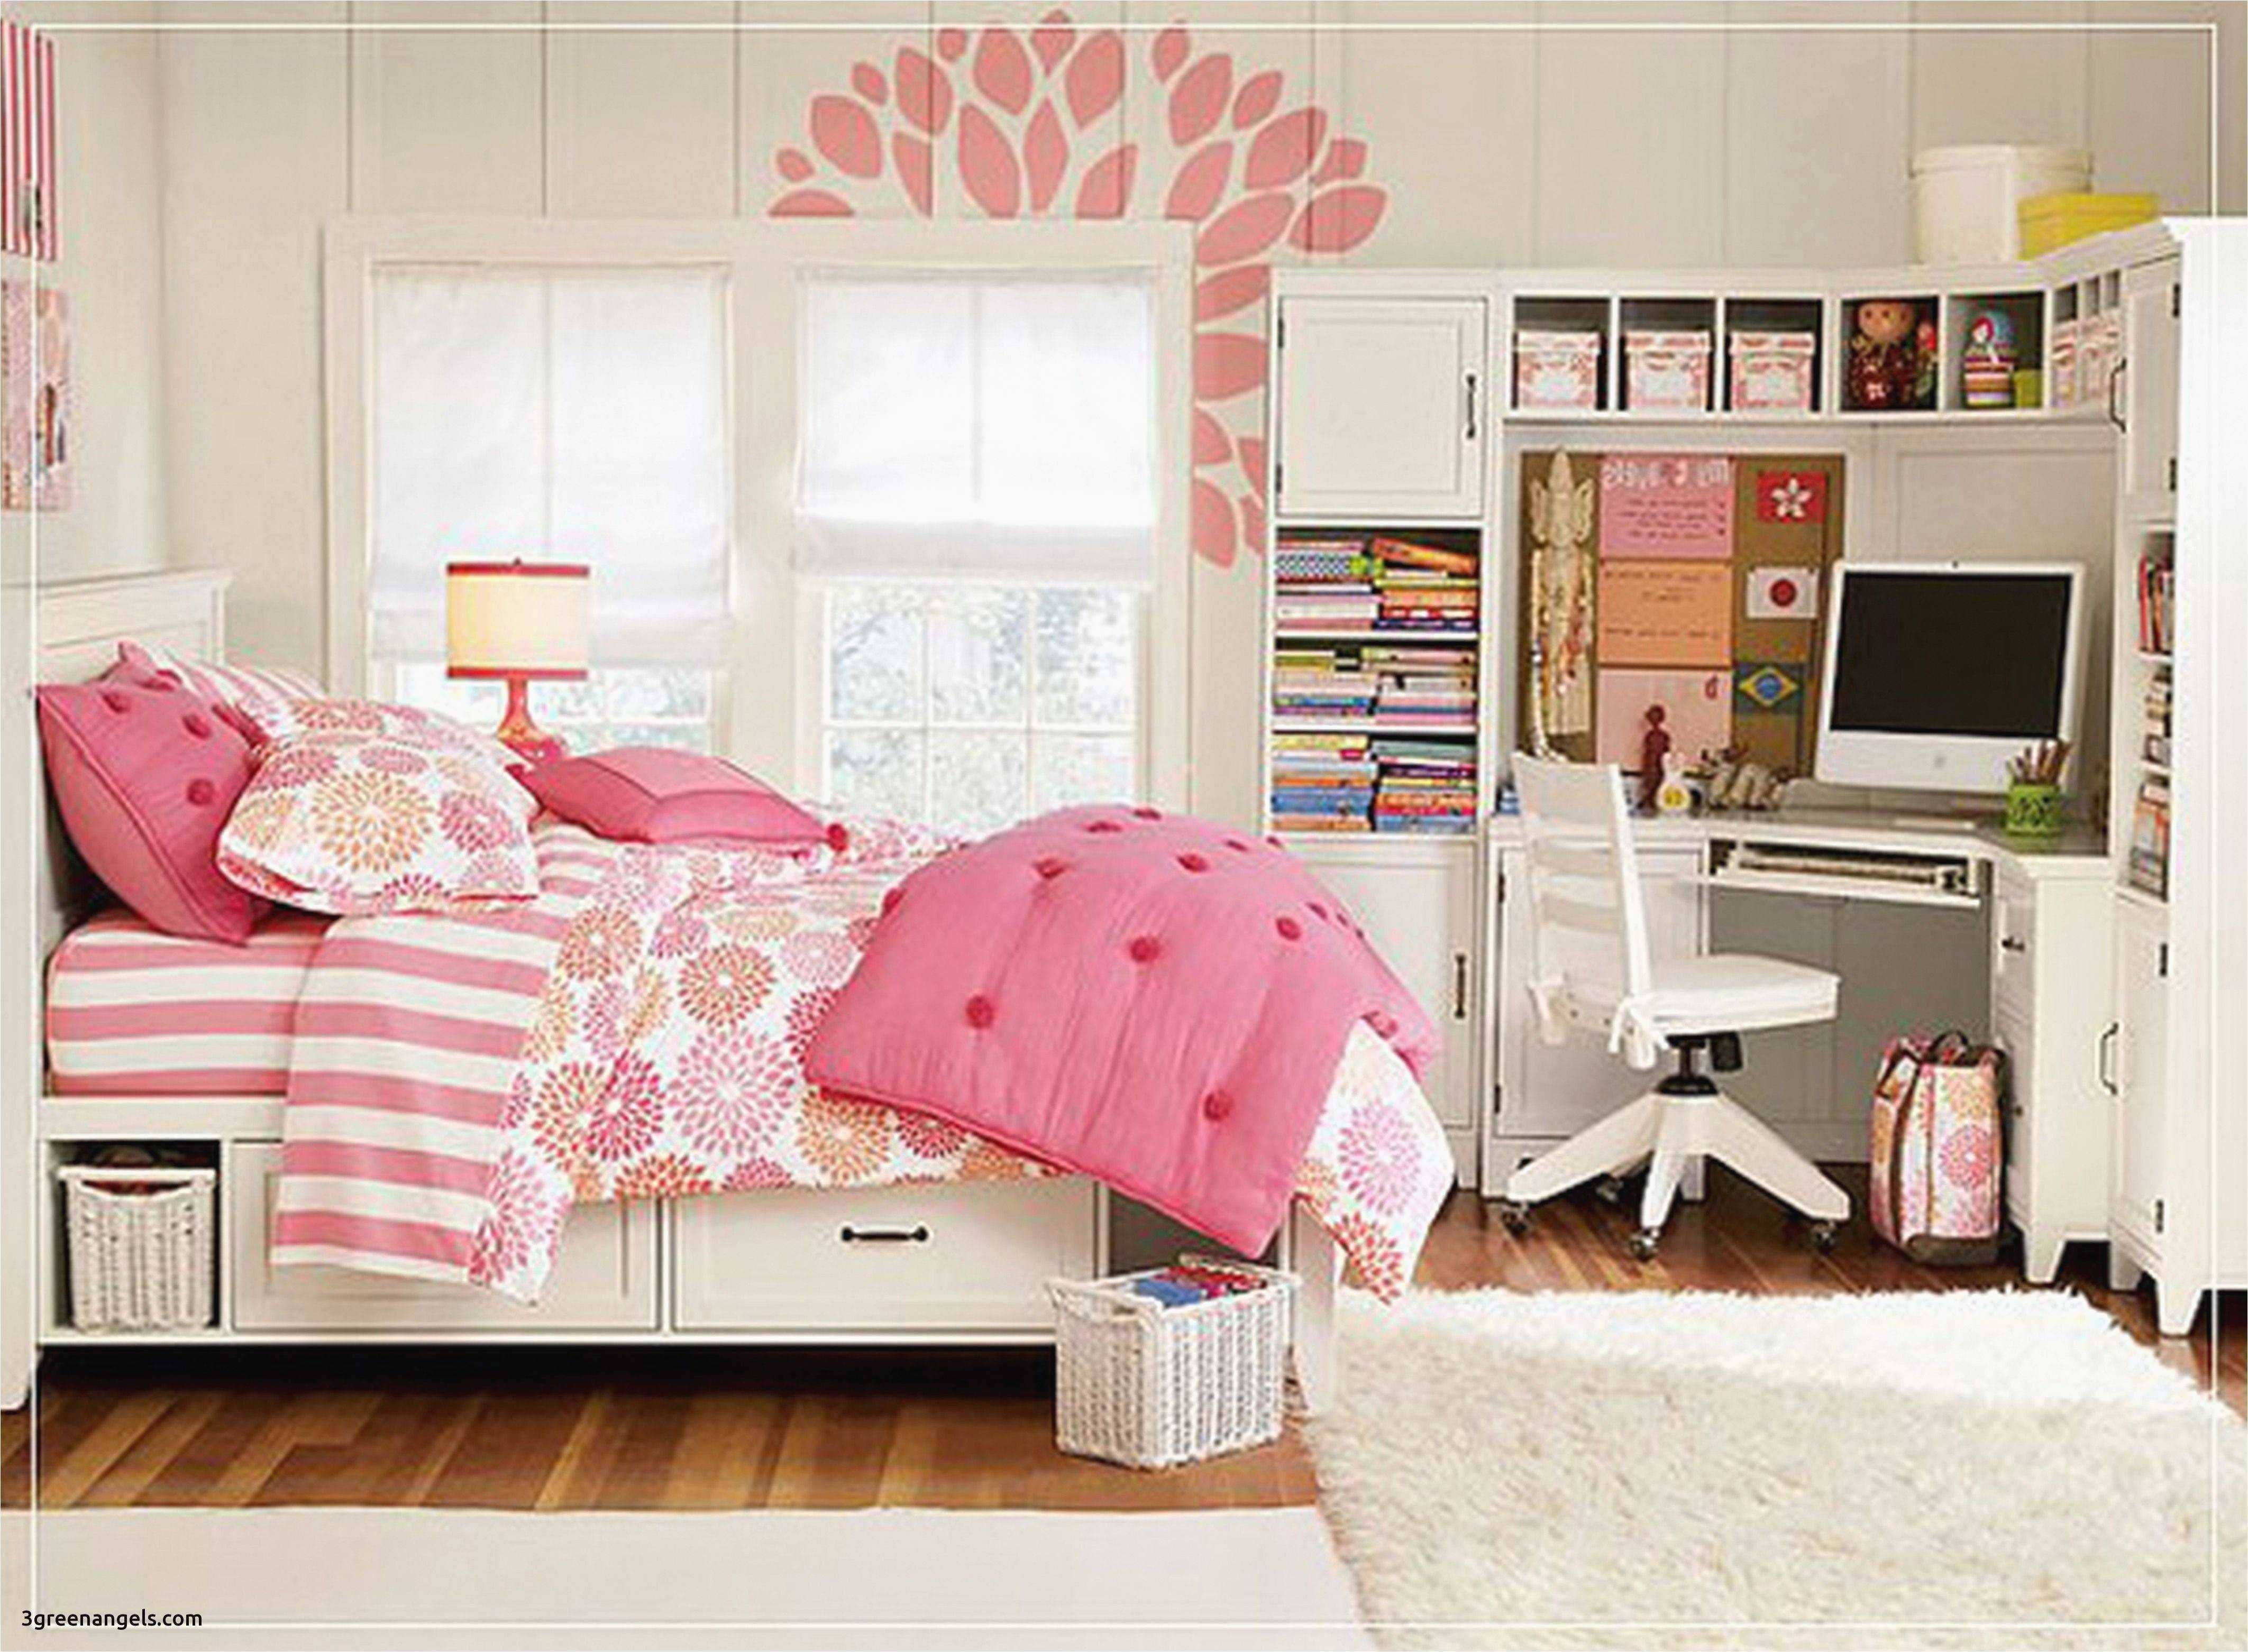 15 Lovely Childrens Bedroom Furniture Sets Ideas Manlikemarvinsparks Com Girl Room Inspiration Girl Bedroom Decor Small Room Bedroom